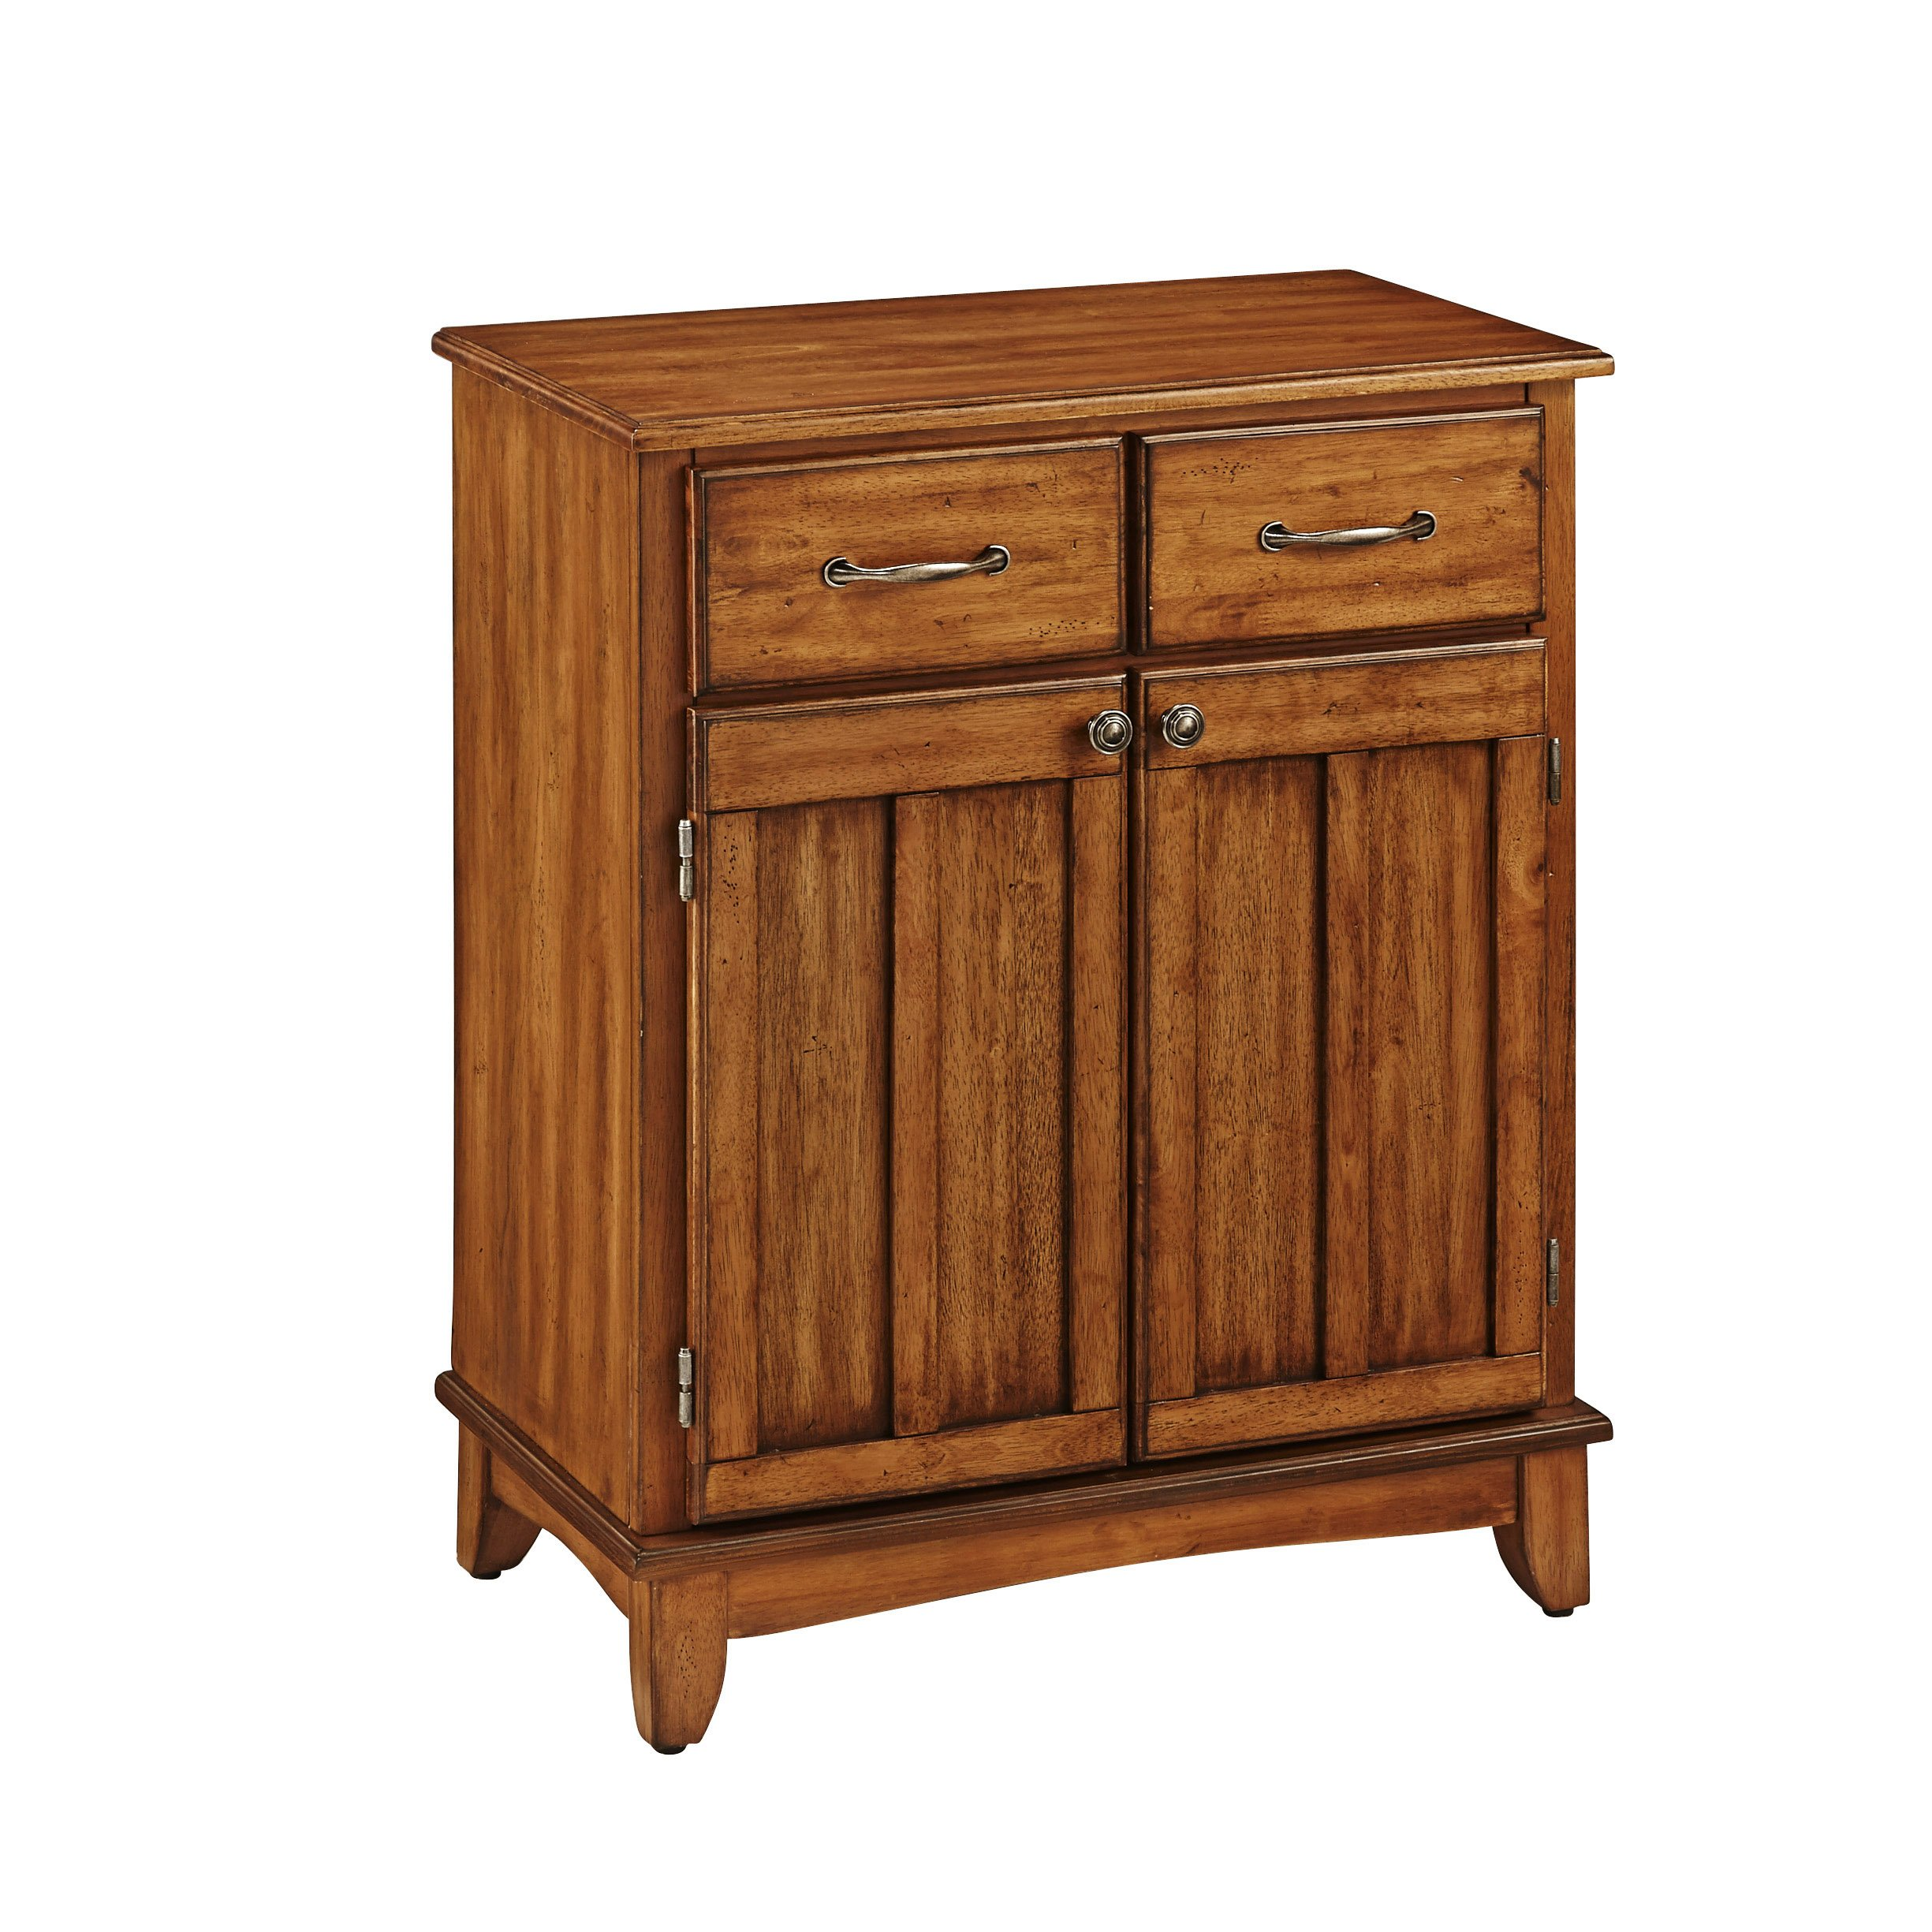 Buffet of Buffet Cottage Oak with Wood Top by Home Styles by Home Styles